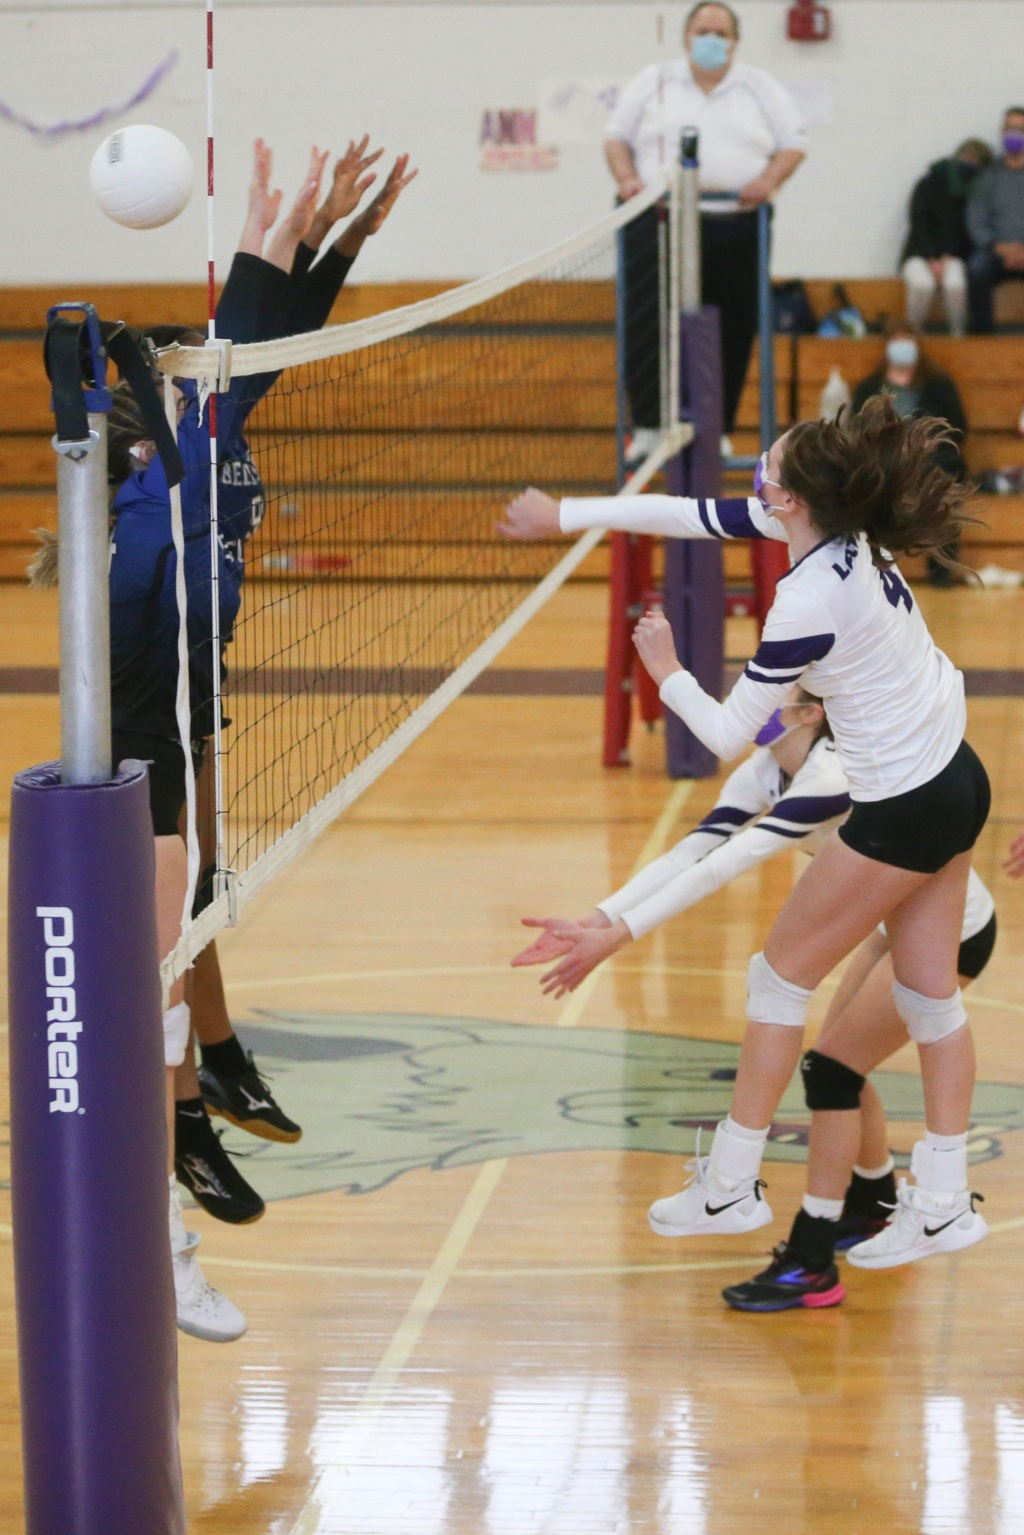 Girls volleyball preview: Can anyone stop Needham?